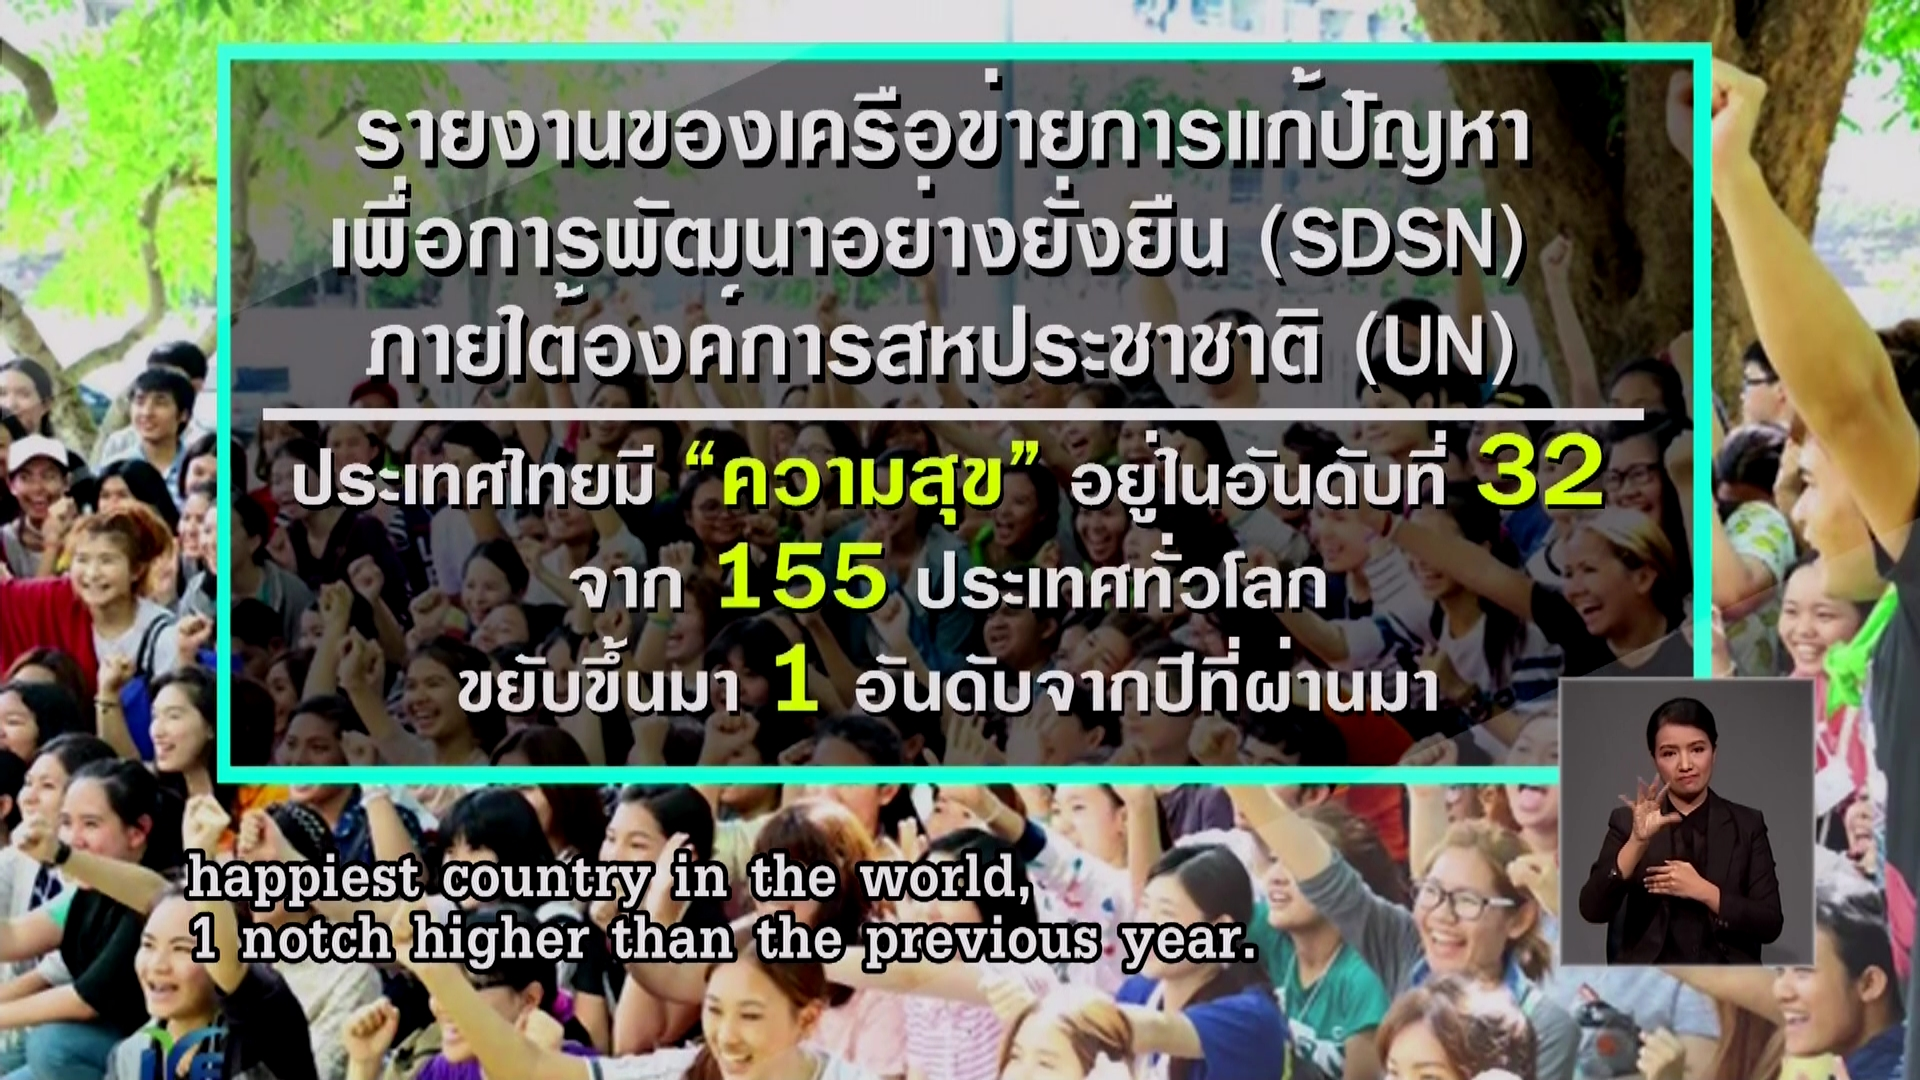 Thailand News 26-03-17 2 NNT Thailand ranked 32nd happiest country by United Nations 1JPG